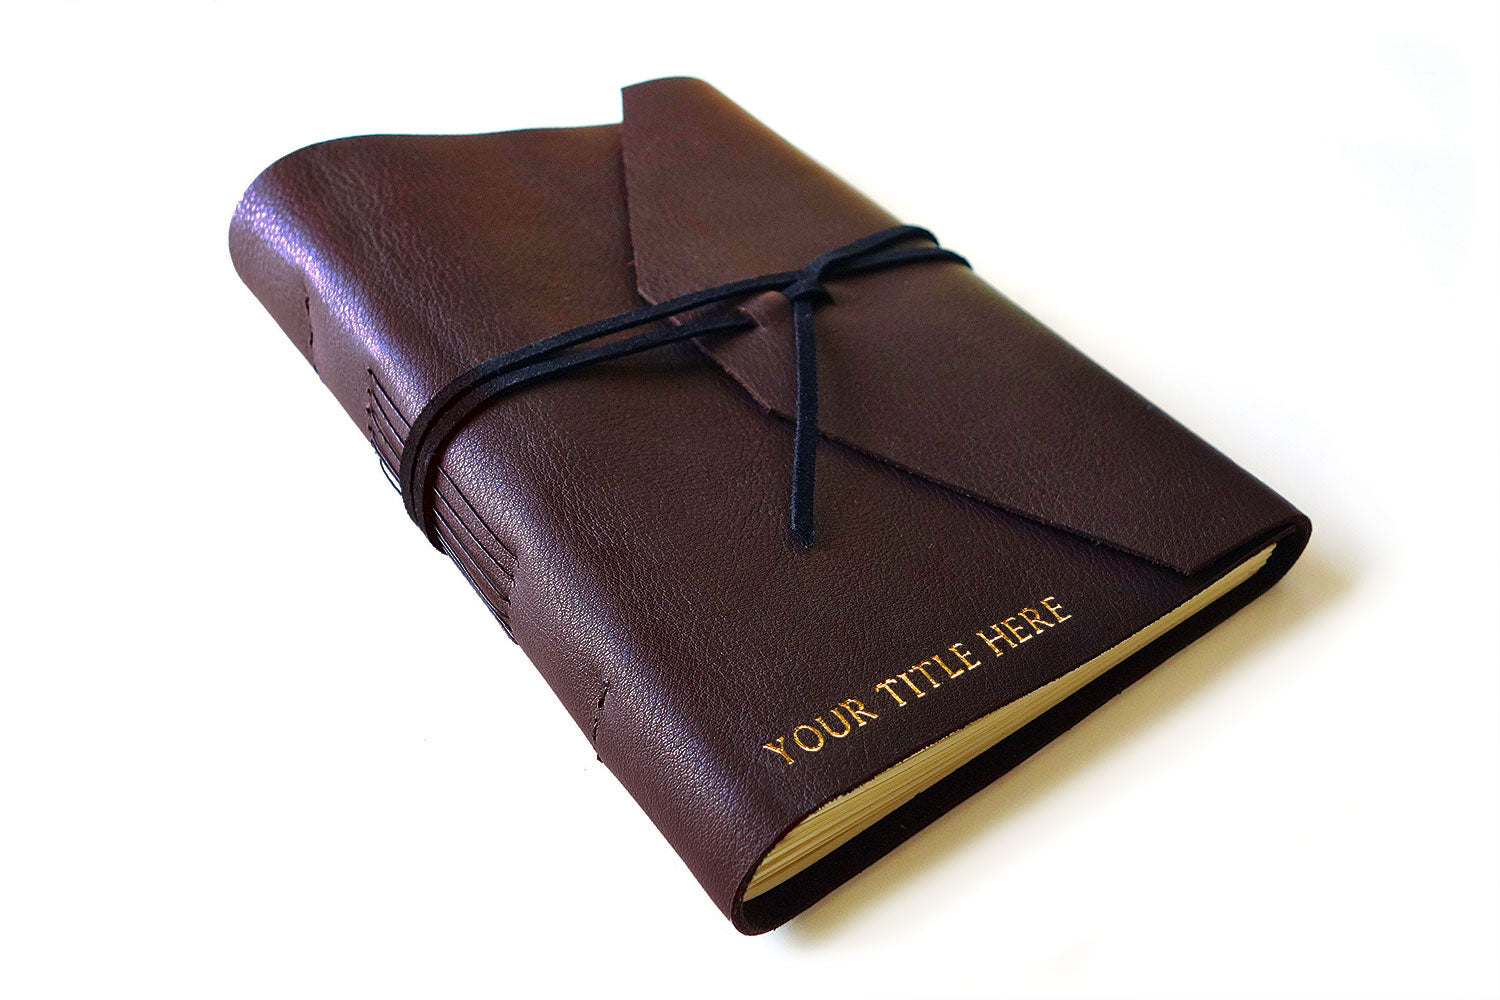 leather guest book with Your text here - Personalised leather guest book in dark brown leather from Bookshell